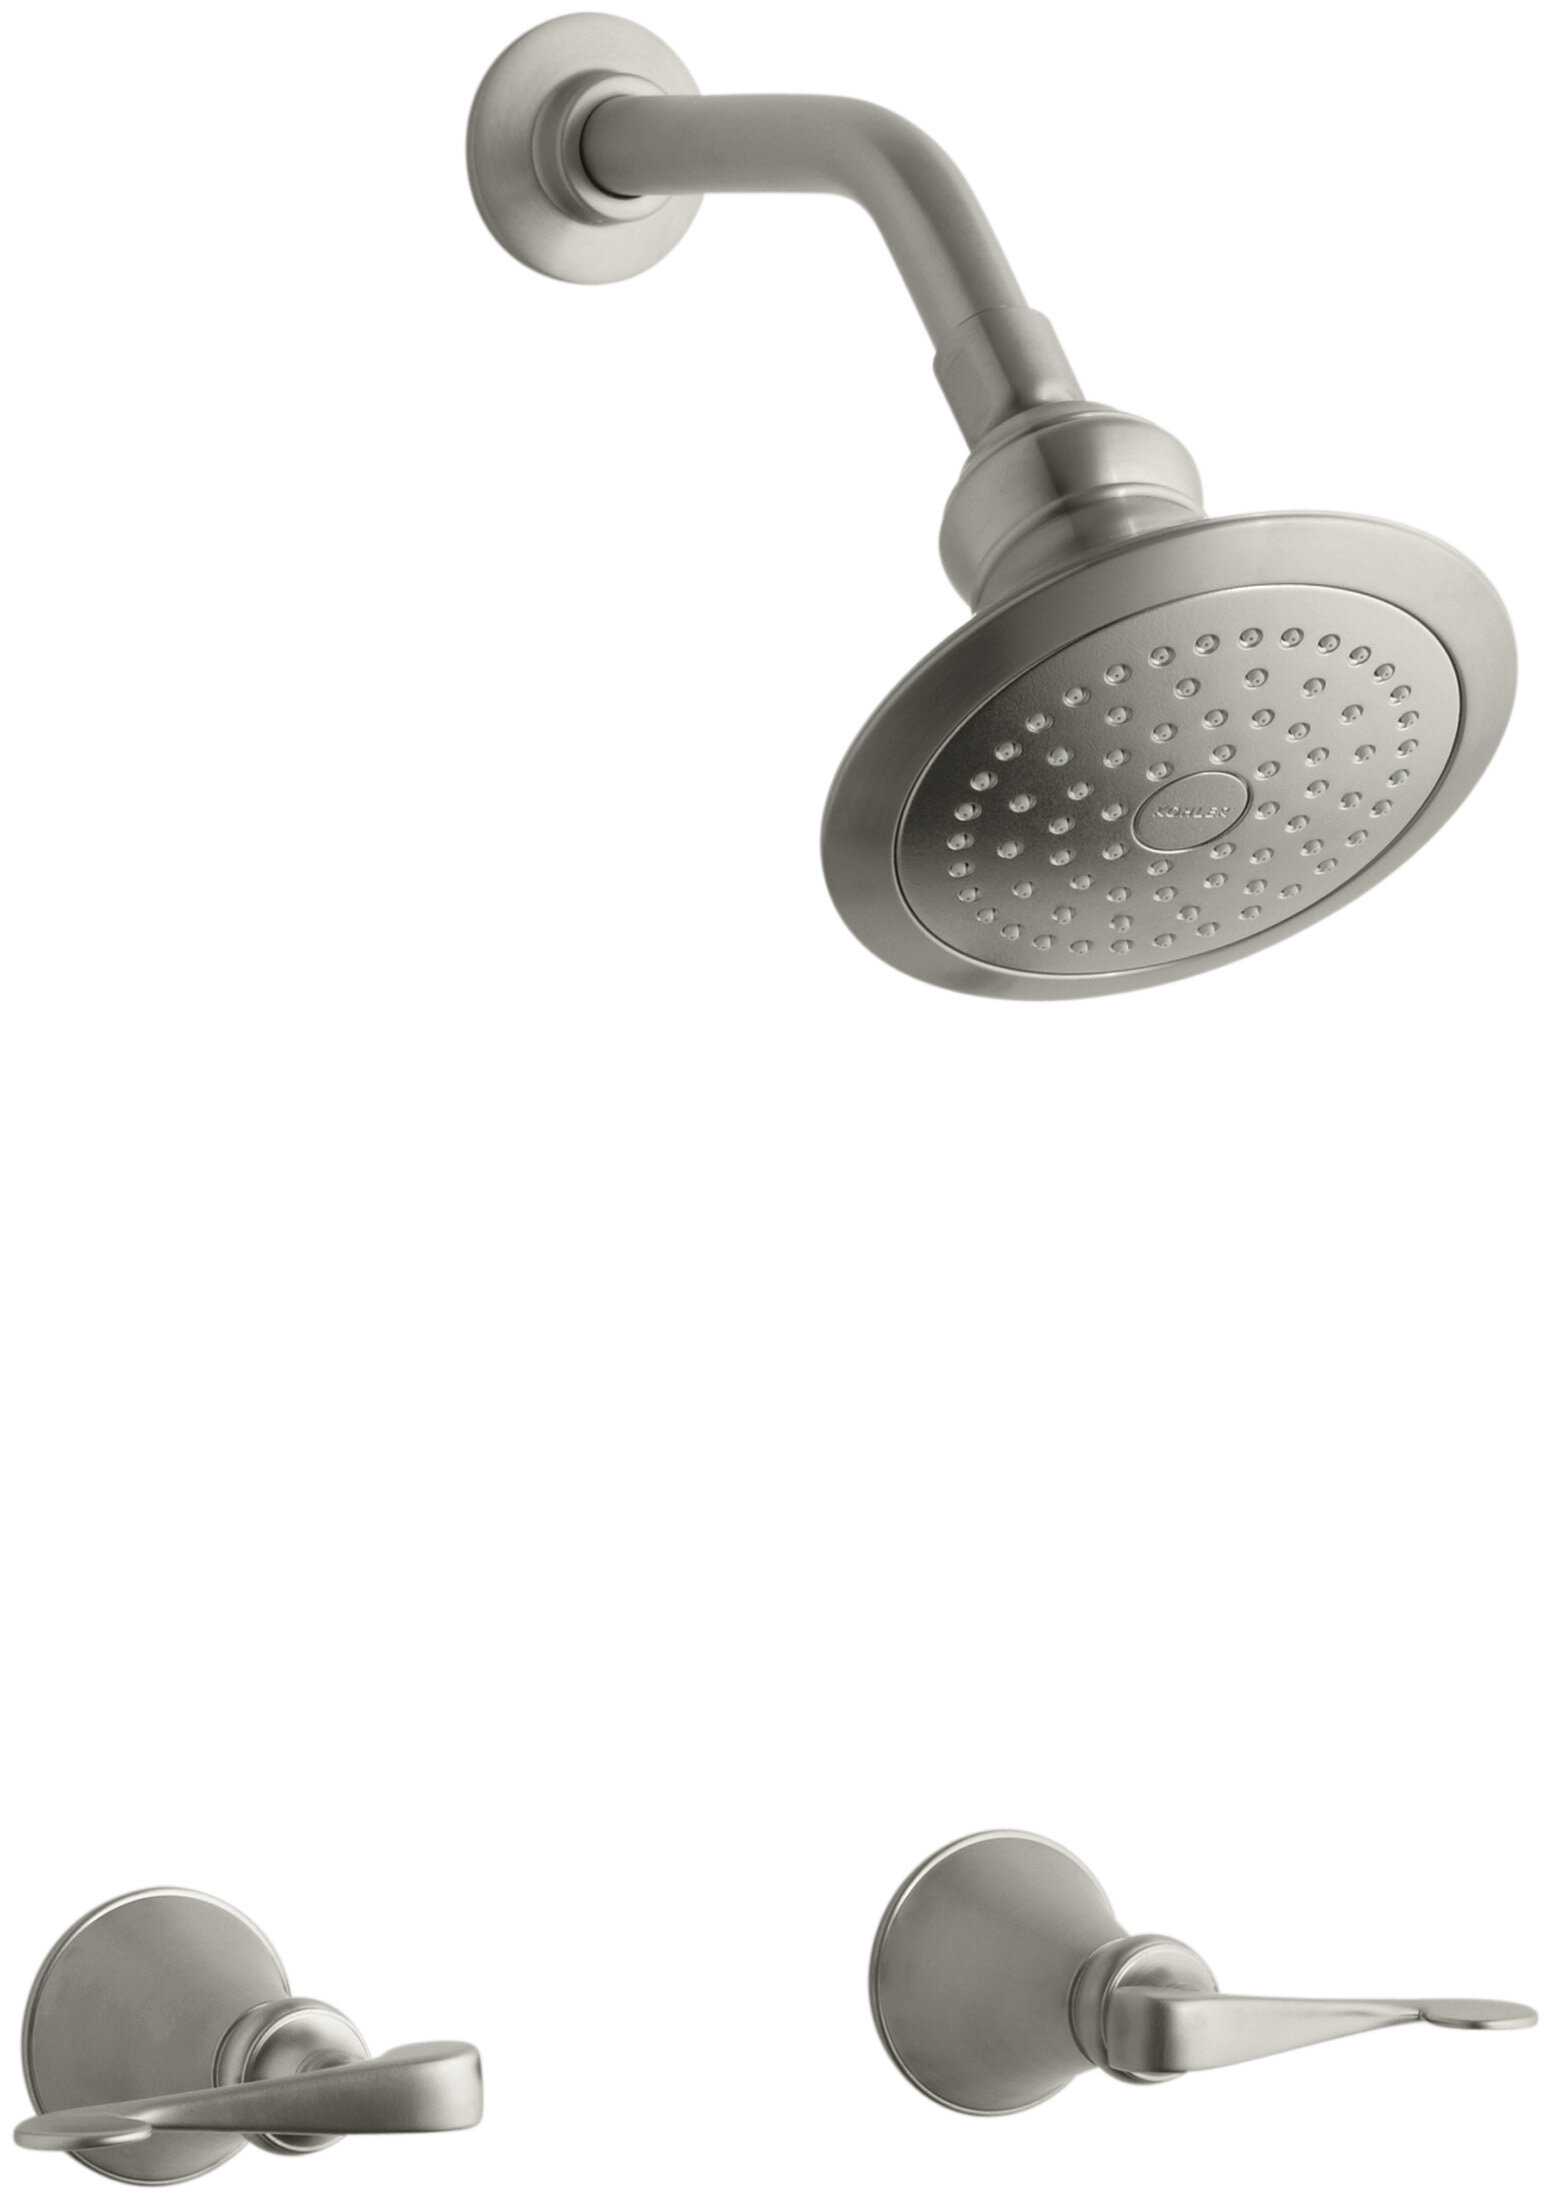 Revival Shower Faucet Set With Scroll Lever Handles And Single Function Shower Head Standard Showerarm And Flange